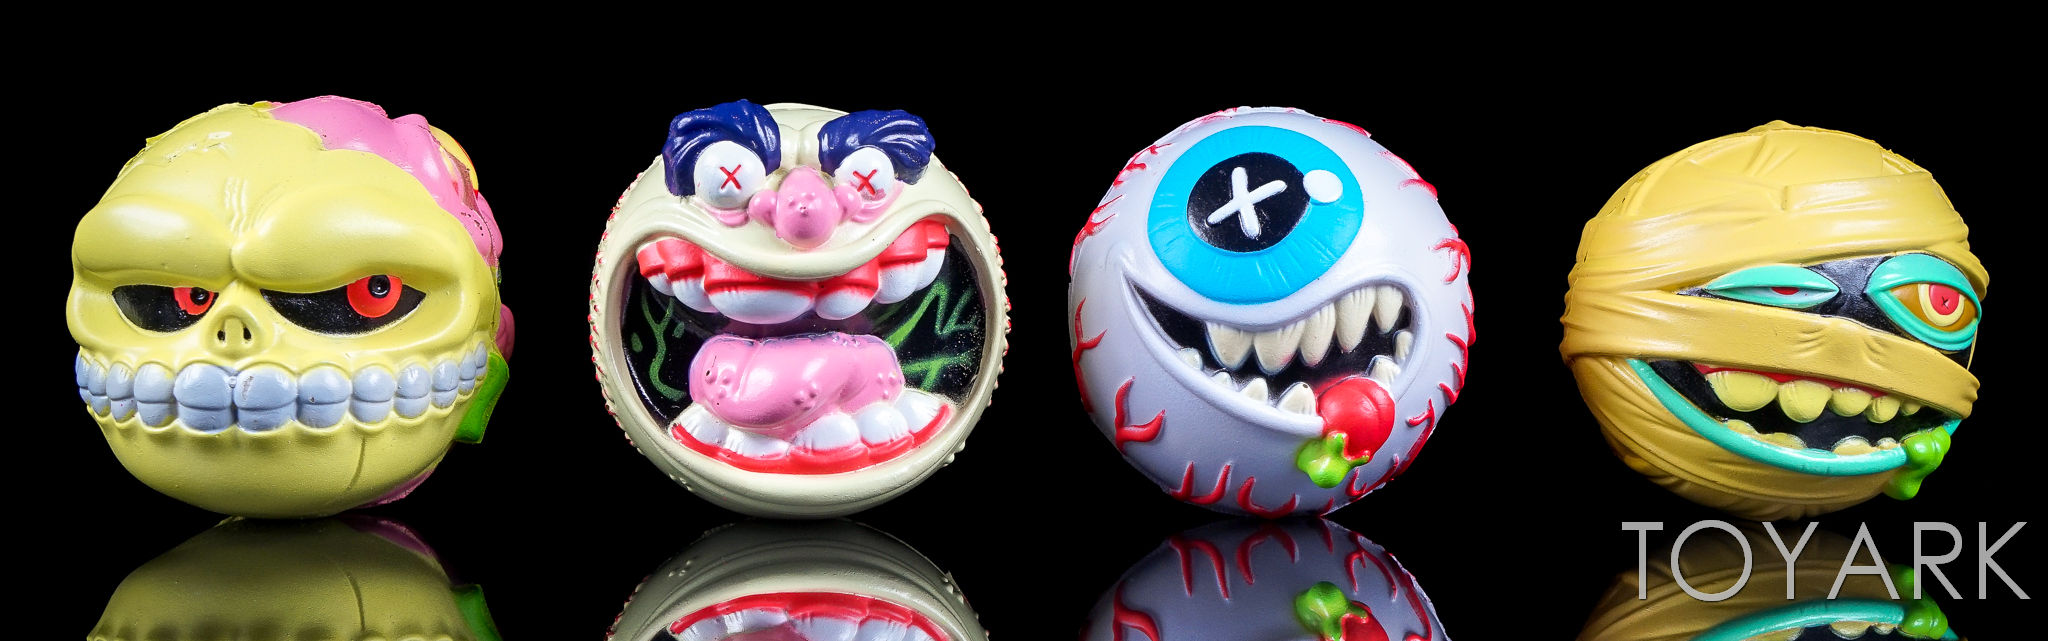 http://news.toyark.com/wp-content/uploads/sites/4/2017/01/Just-Play-Series-1-Madballs-037.jpg